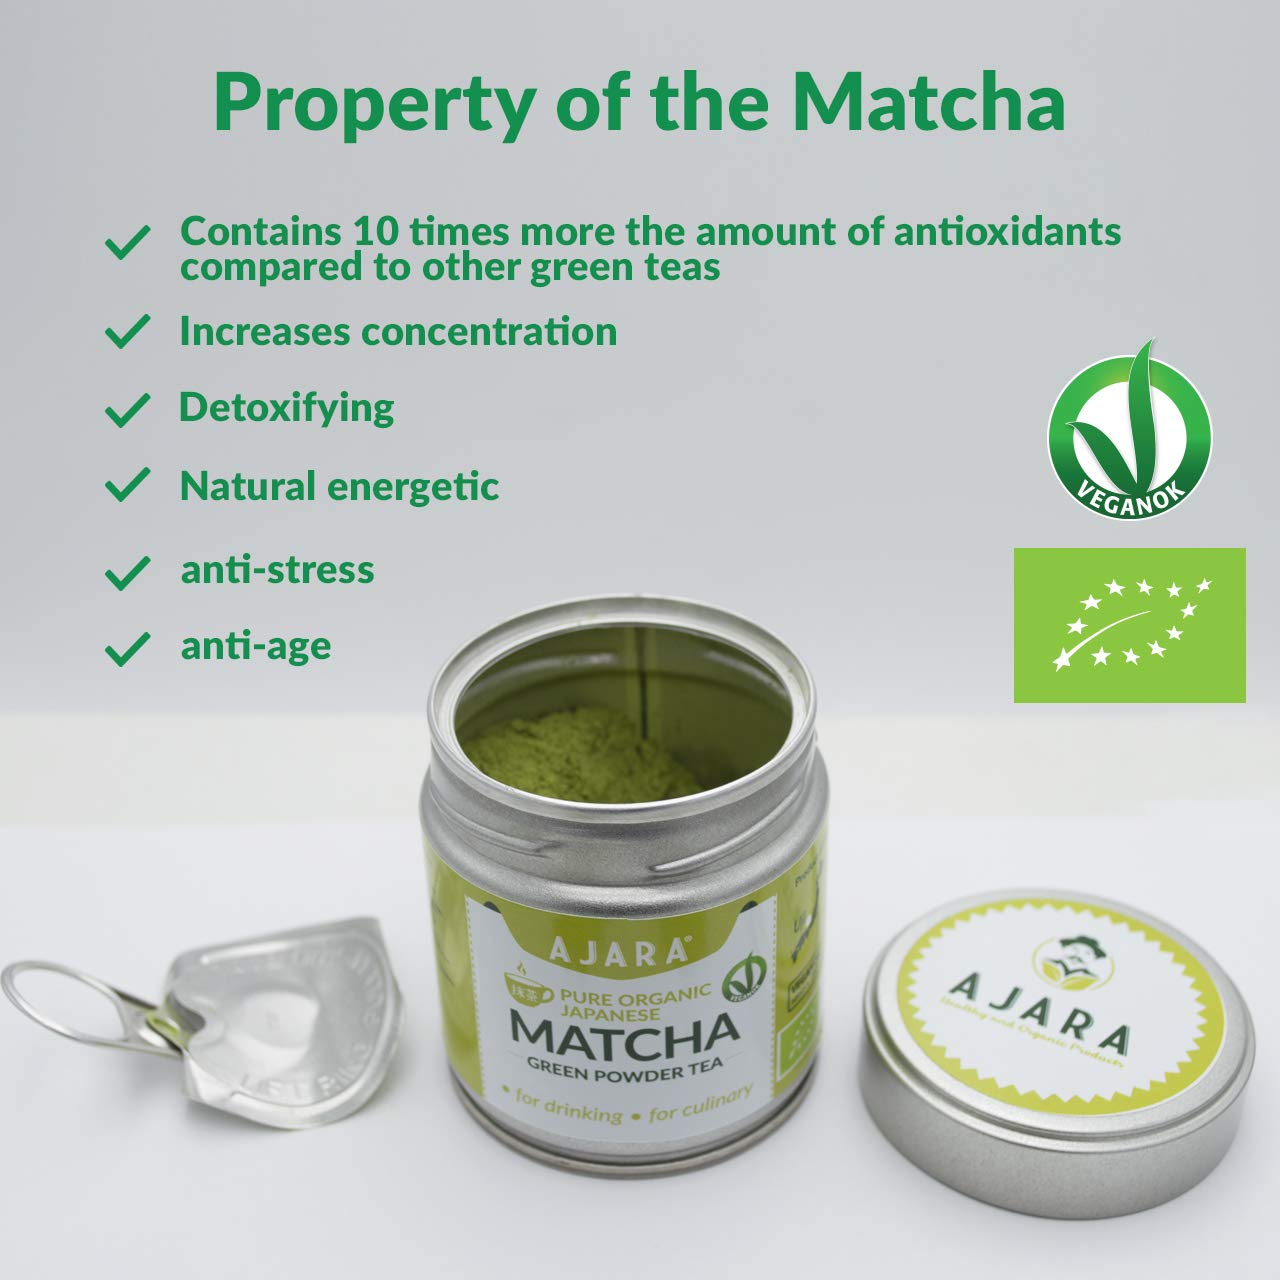 The properties of Matcha green tea